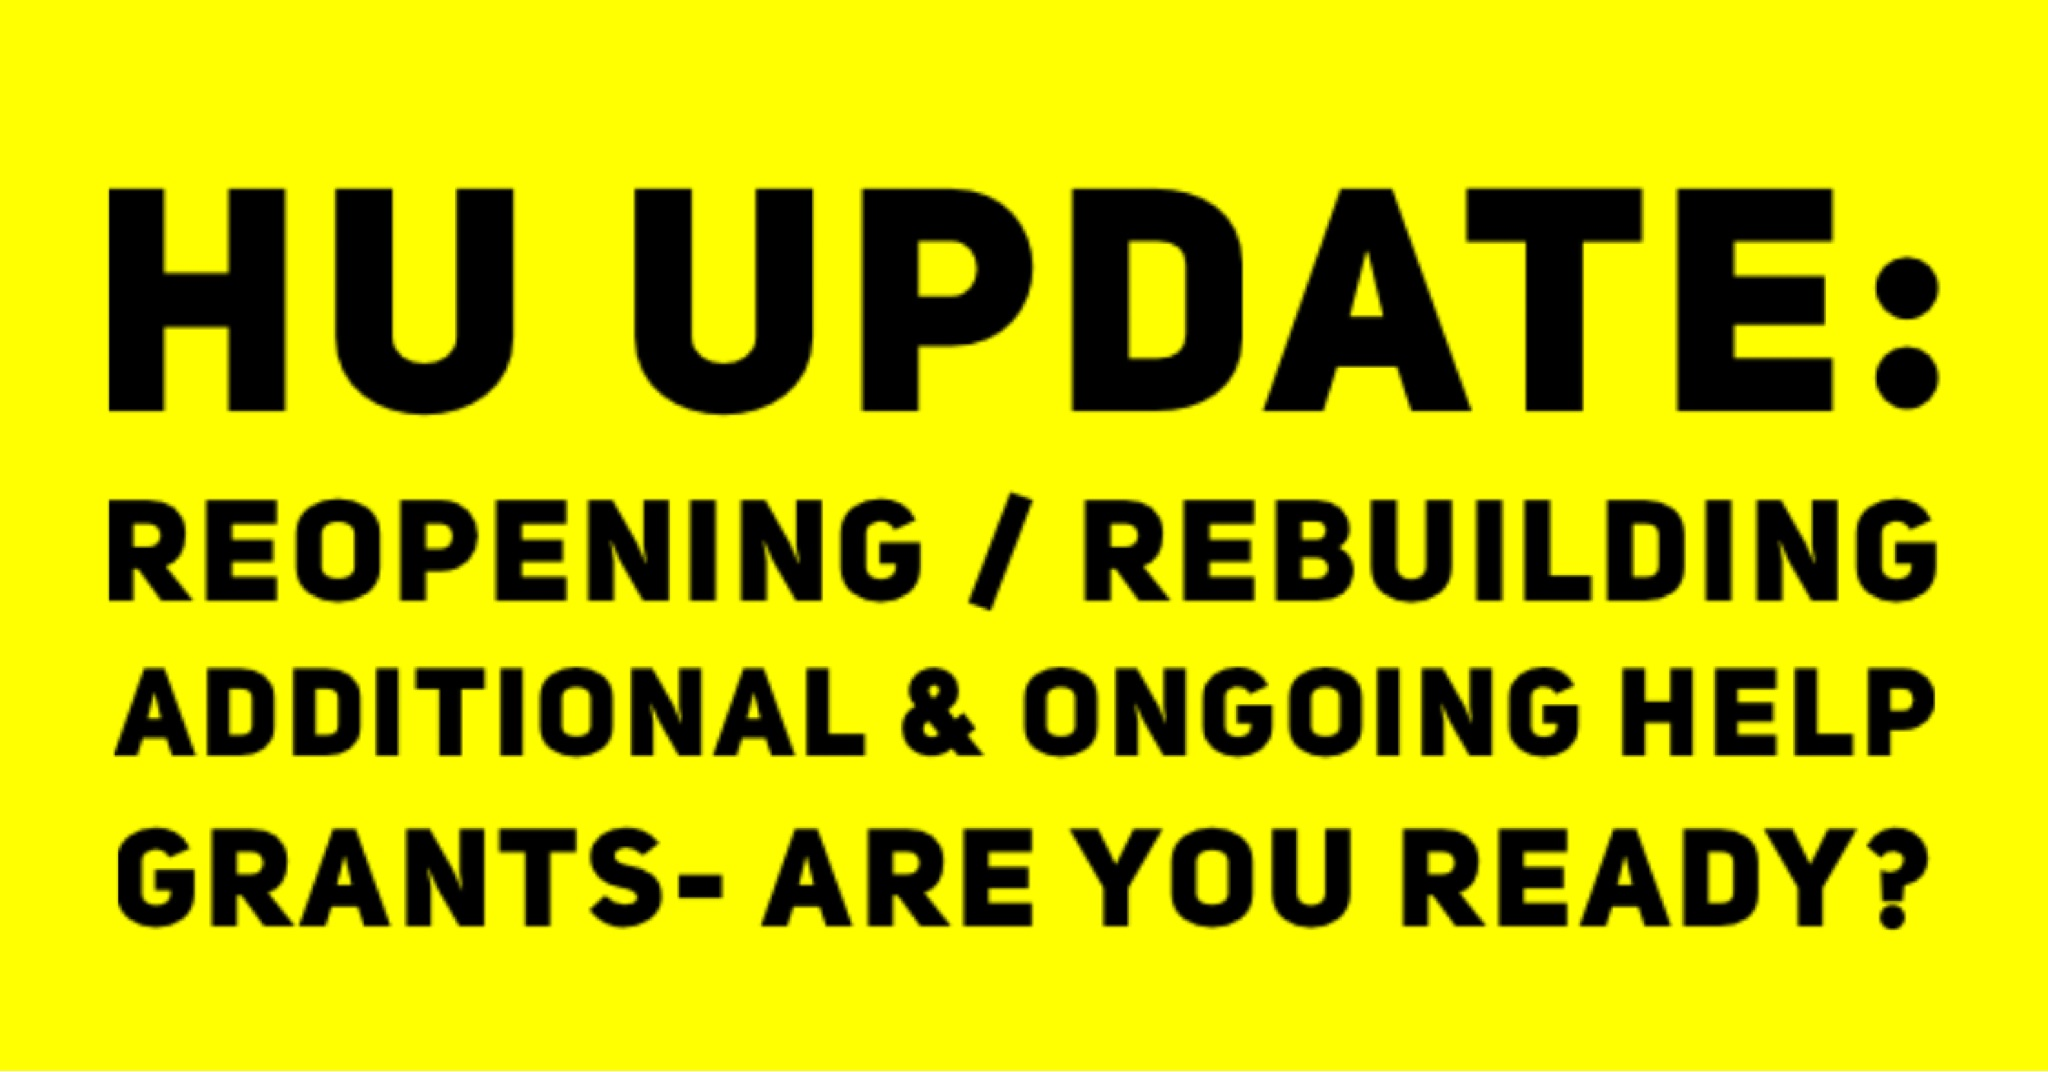 HU UPDATE REOPENING REBUILDING ADDITIONAL ONGOING HELP GRANTS READINESS INSURANCE